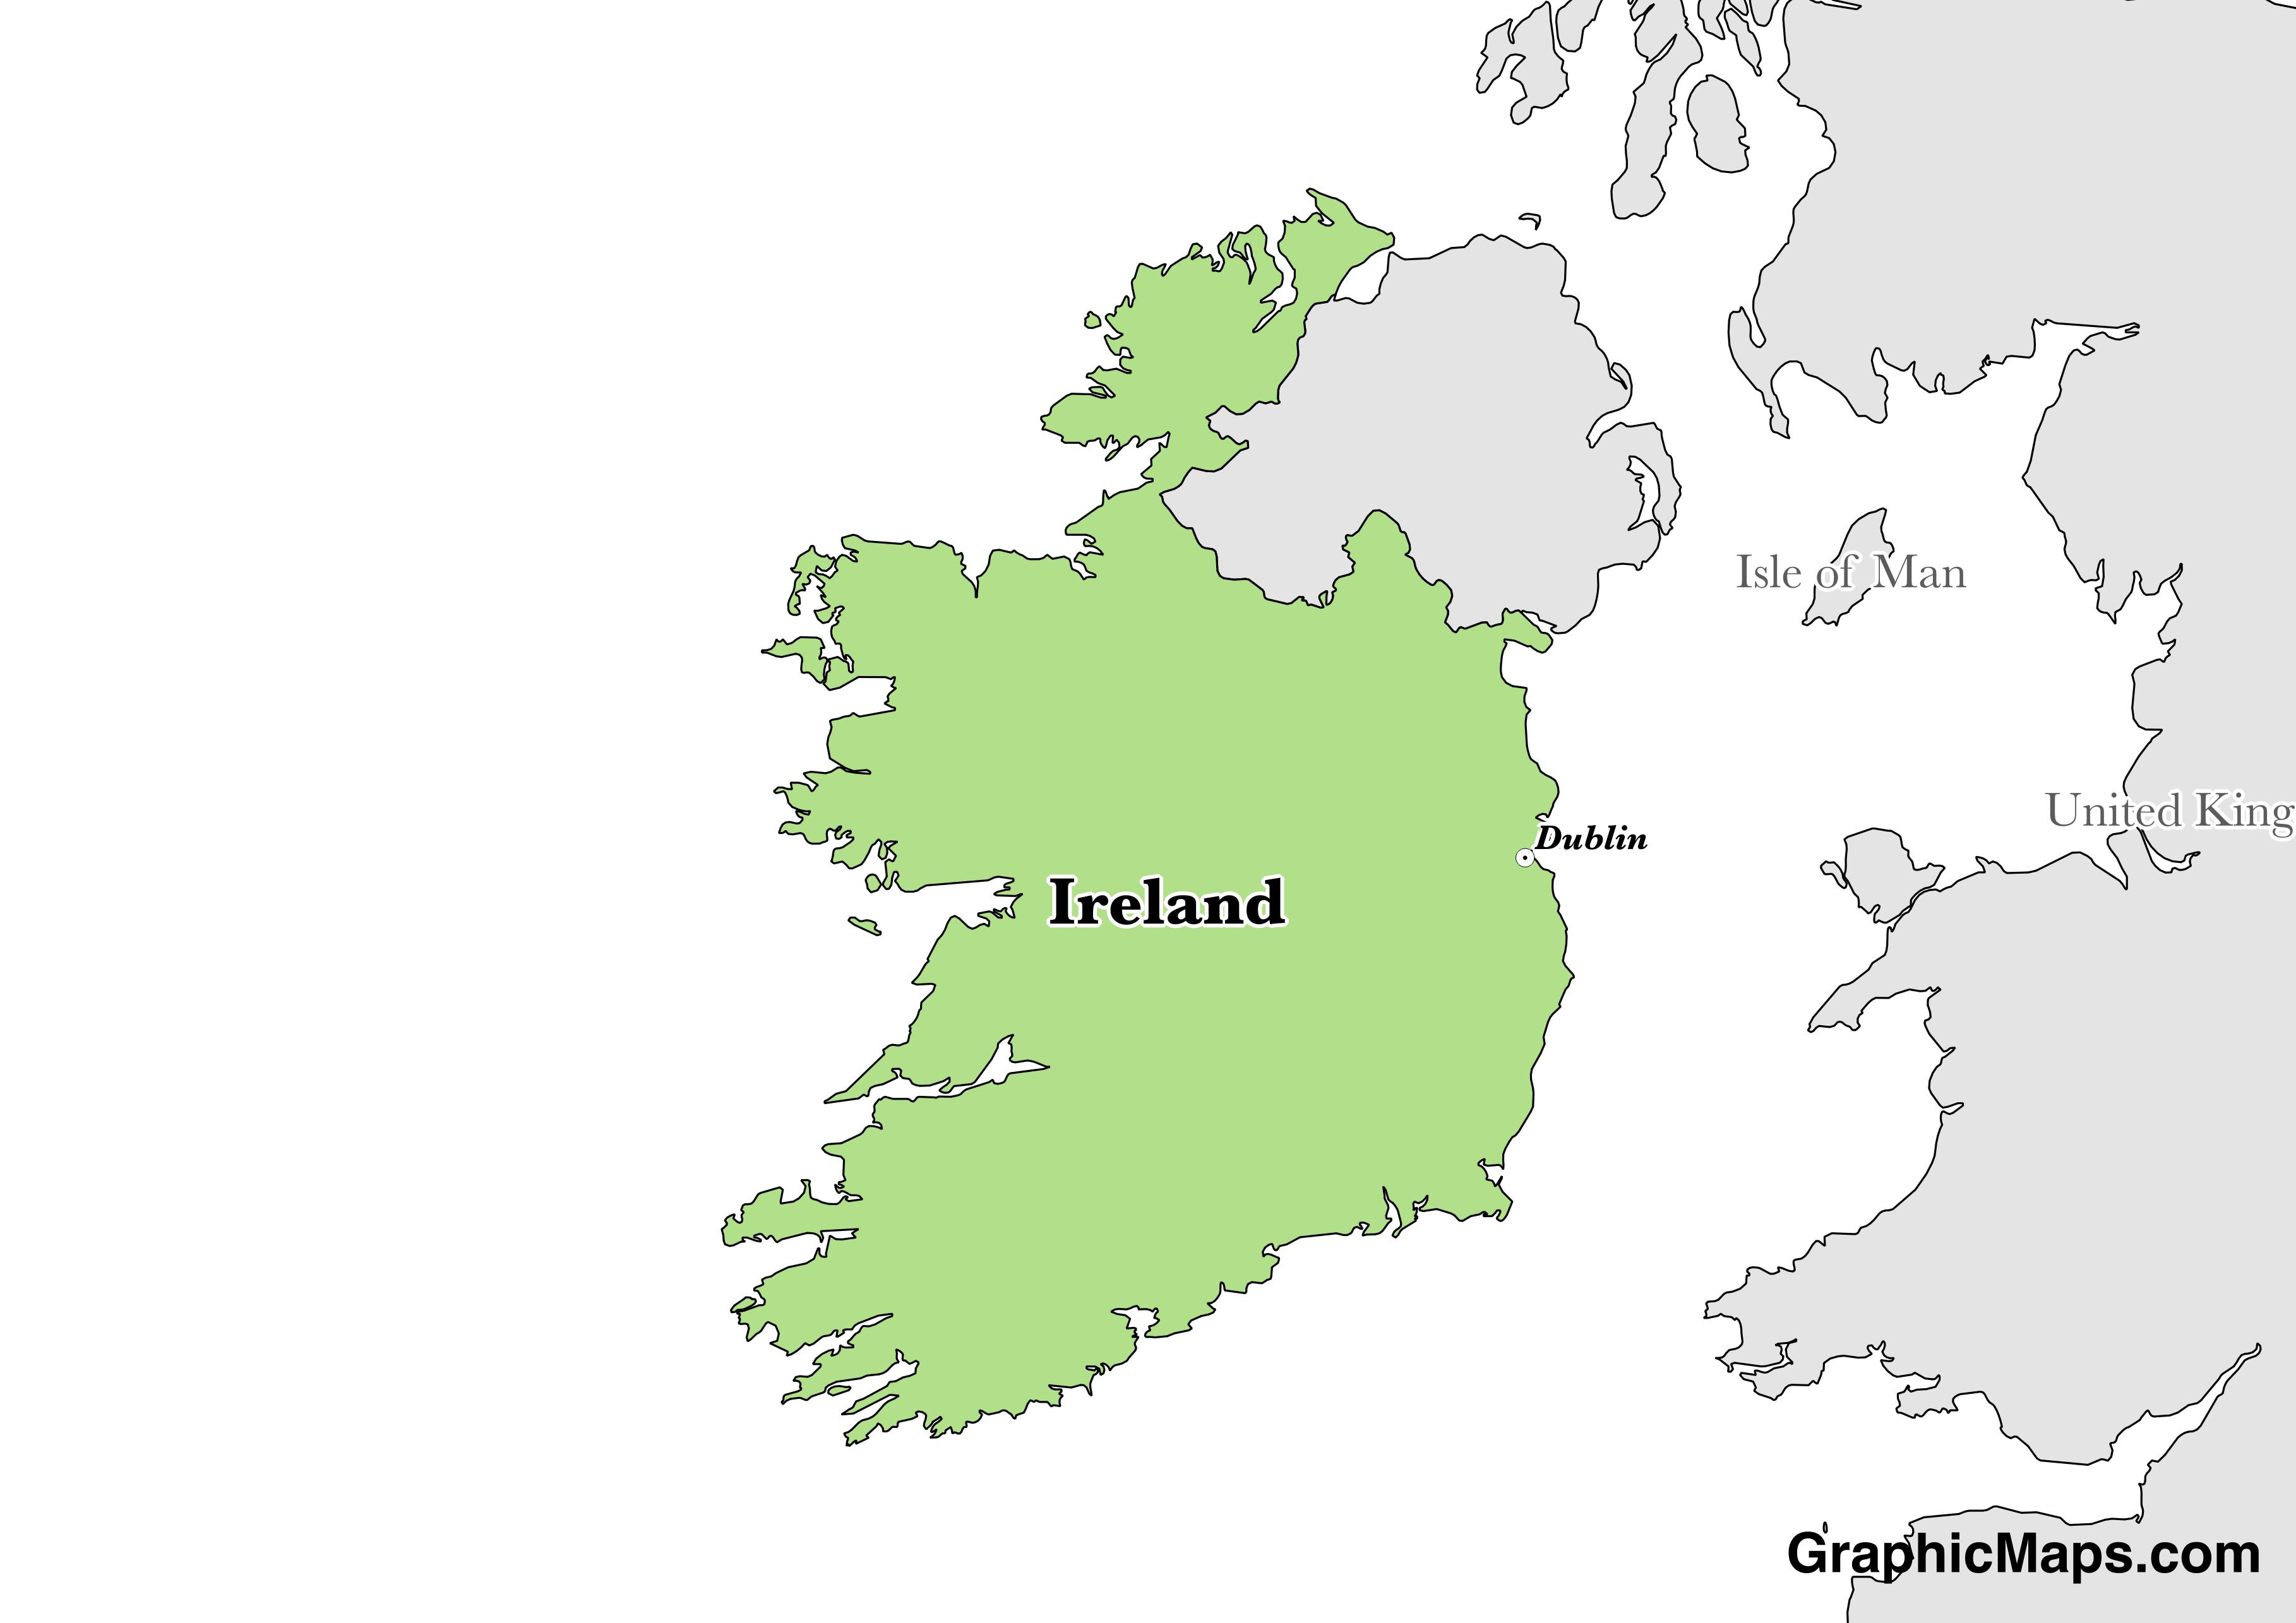 Map showing the location of Ireland